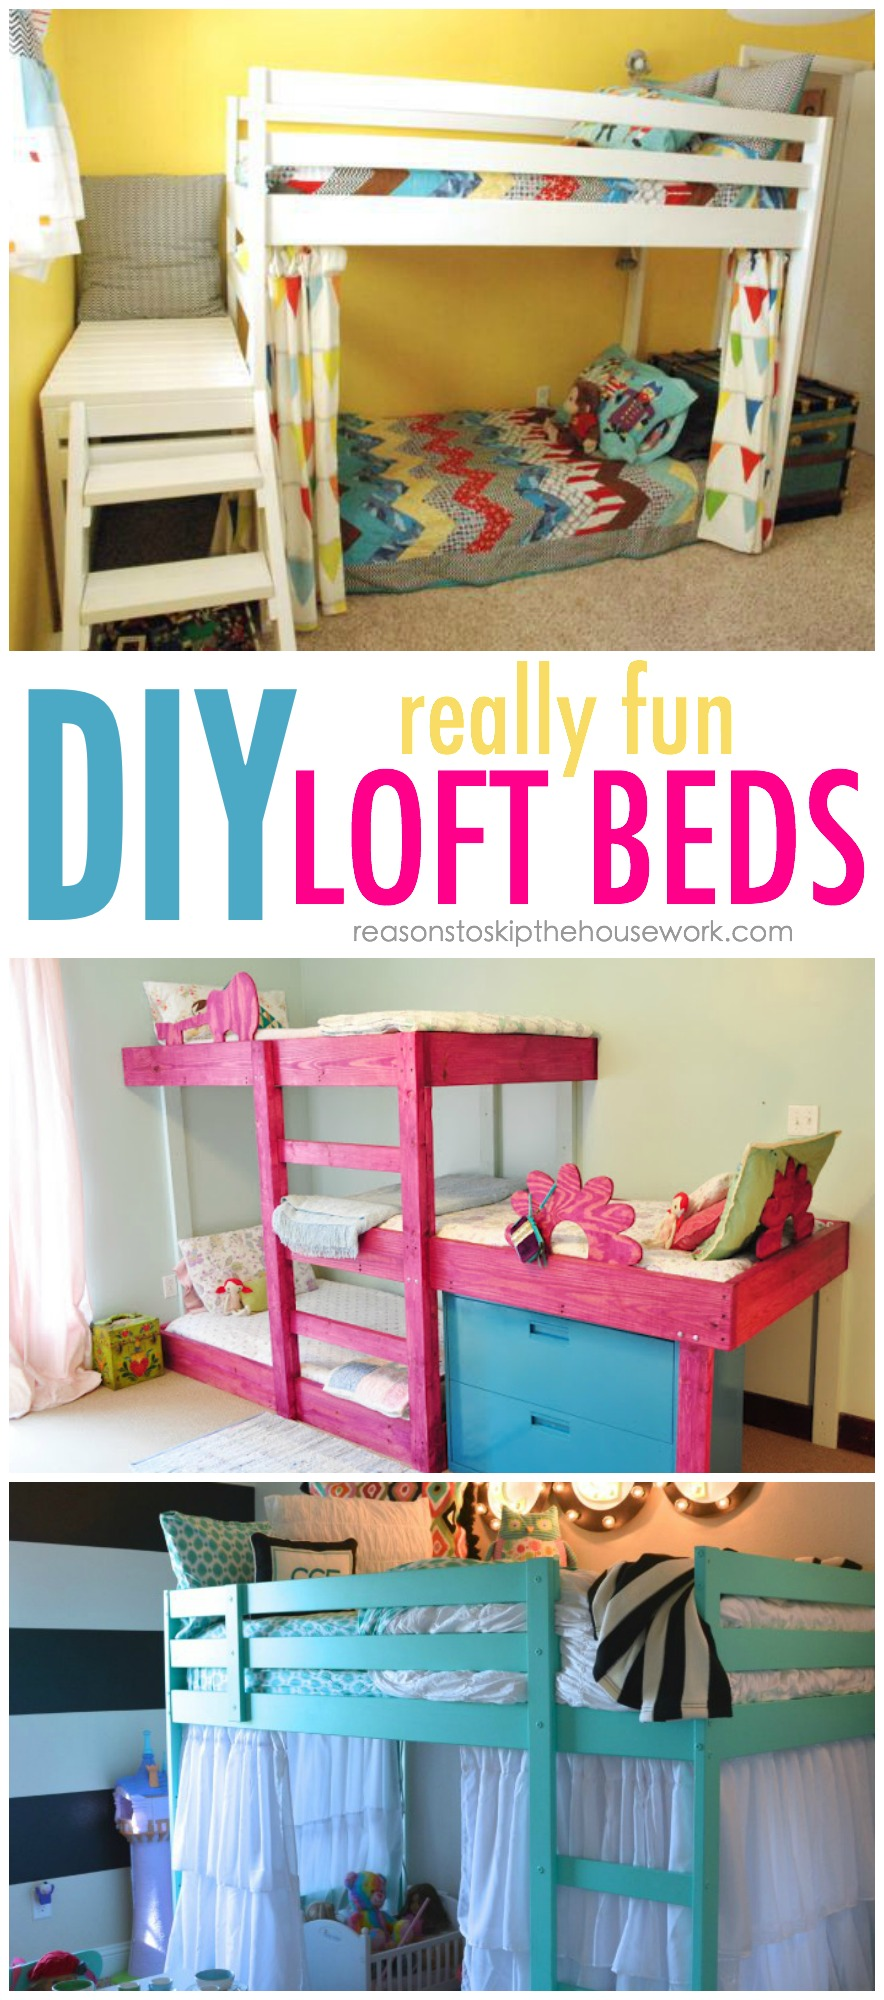 diy play structure plans diy bunk bed plans small outdoor patio design ...